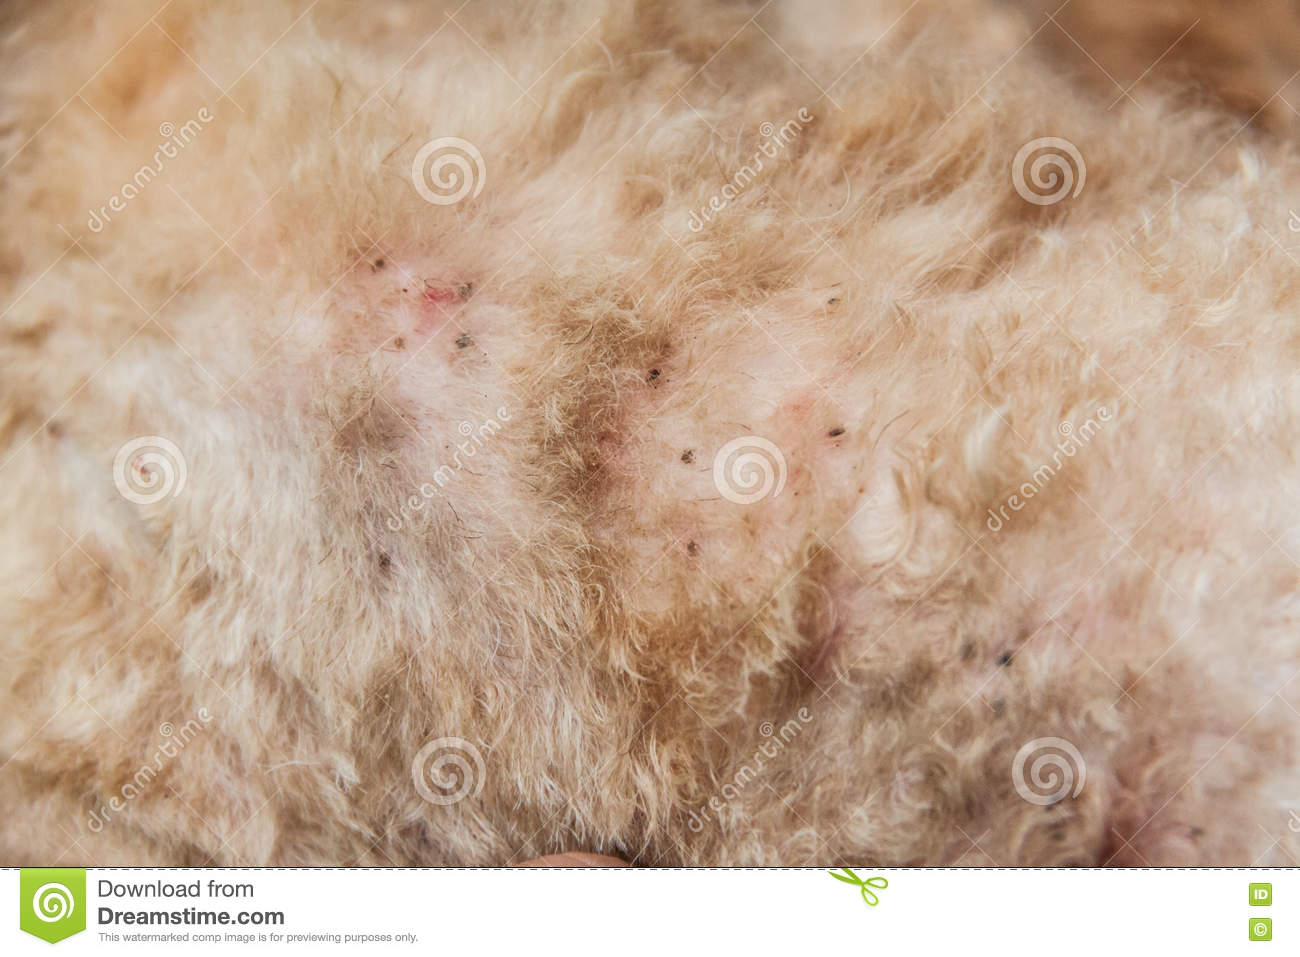 Multiple mites and fleas infected on dog fur skin